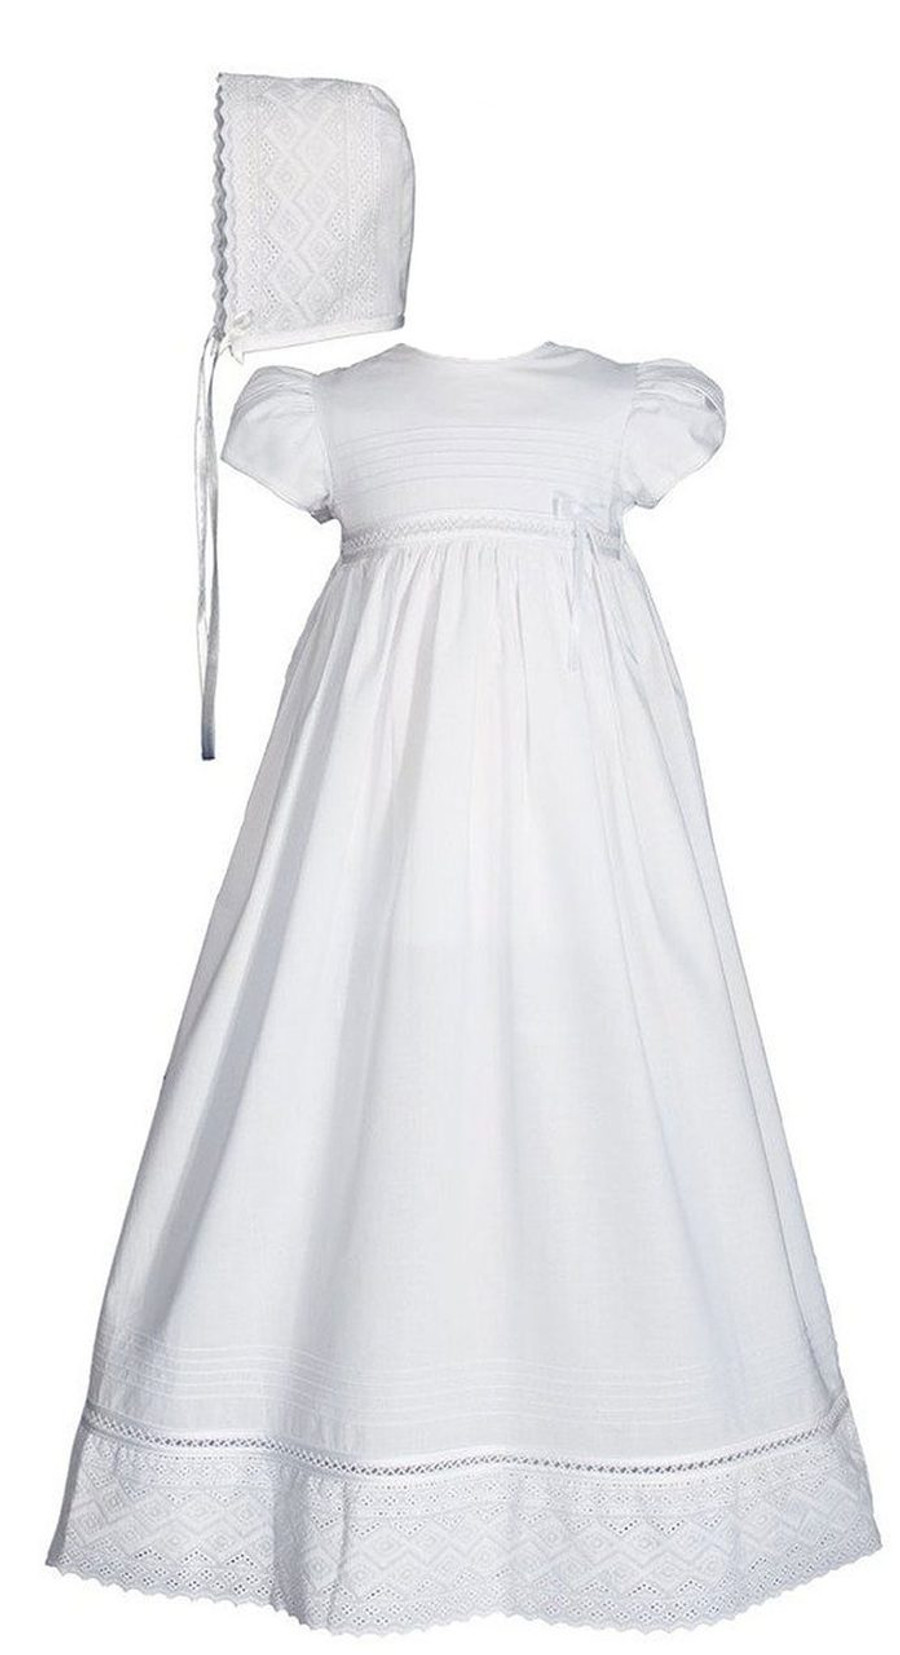 White Christening Baptism Gown Cotton Dress with Lace, Girls 30″